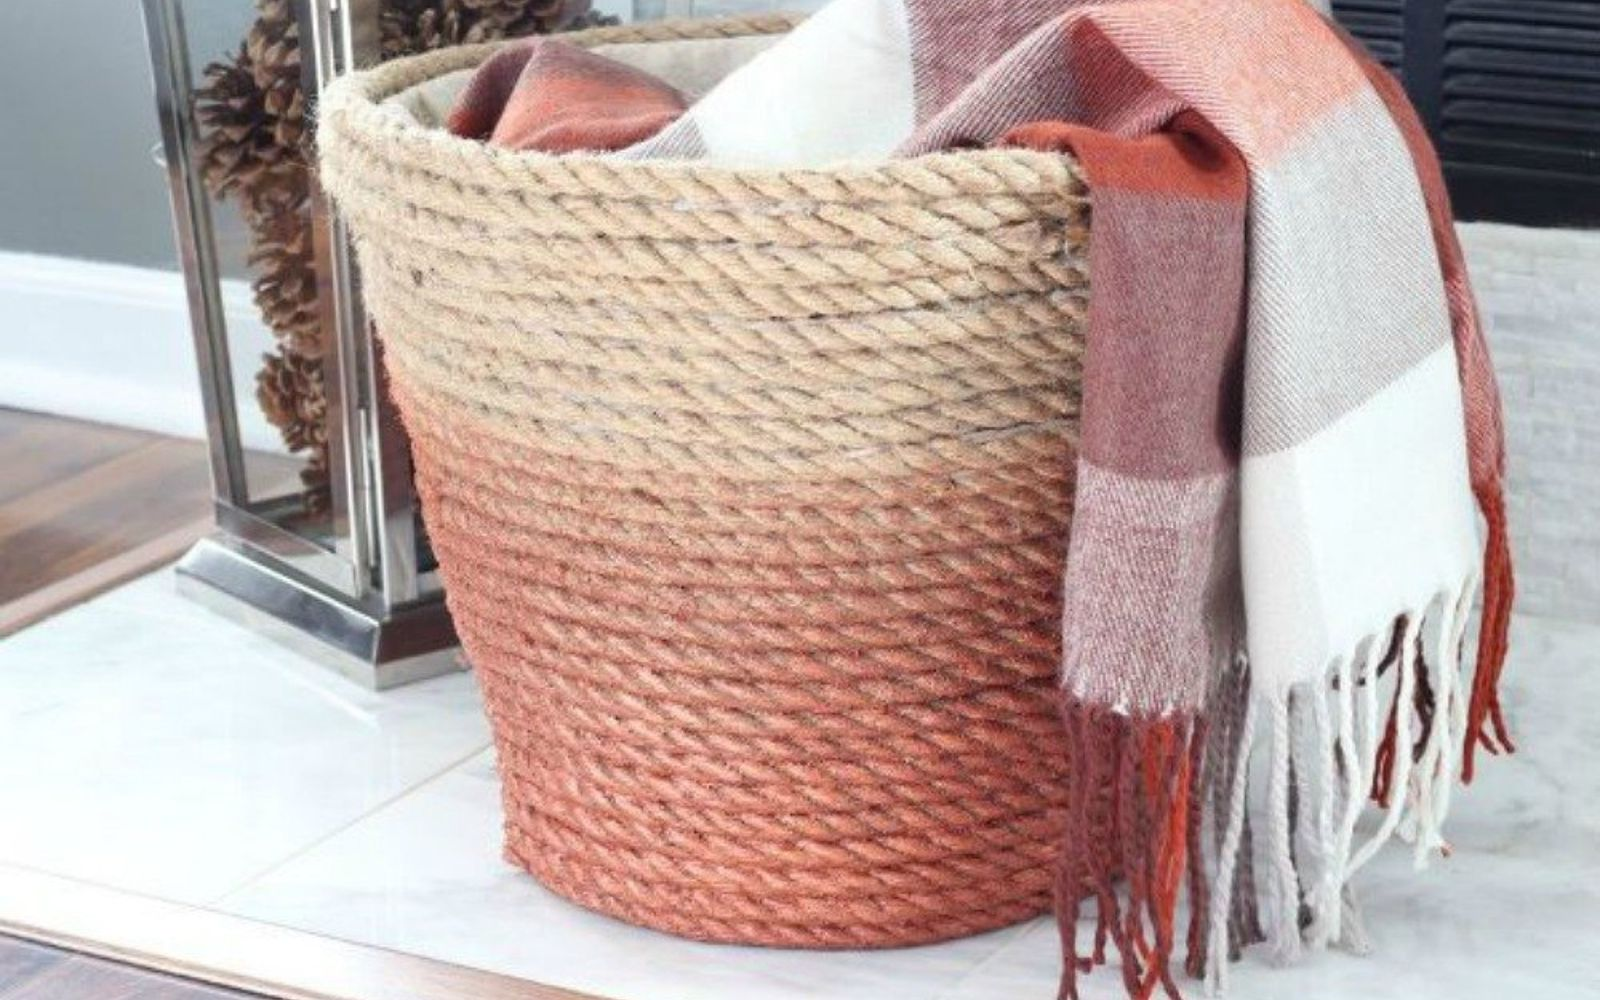 s decorate your living room for under 10 with these 15 ideas, Wrap a cheap laundry basket in jute rope